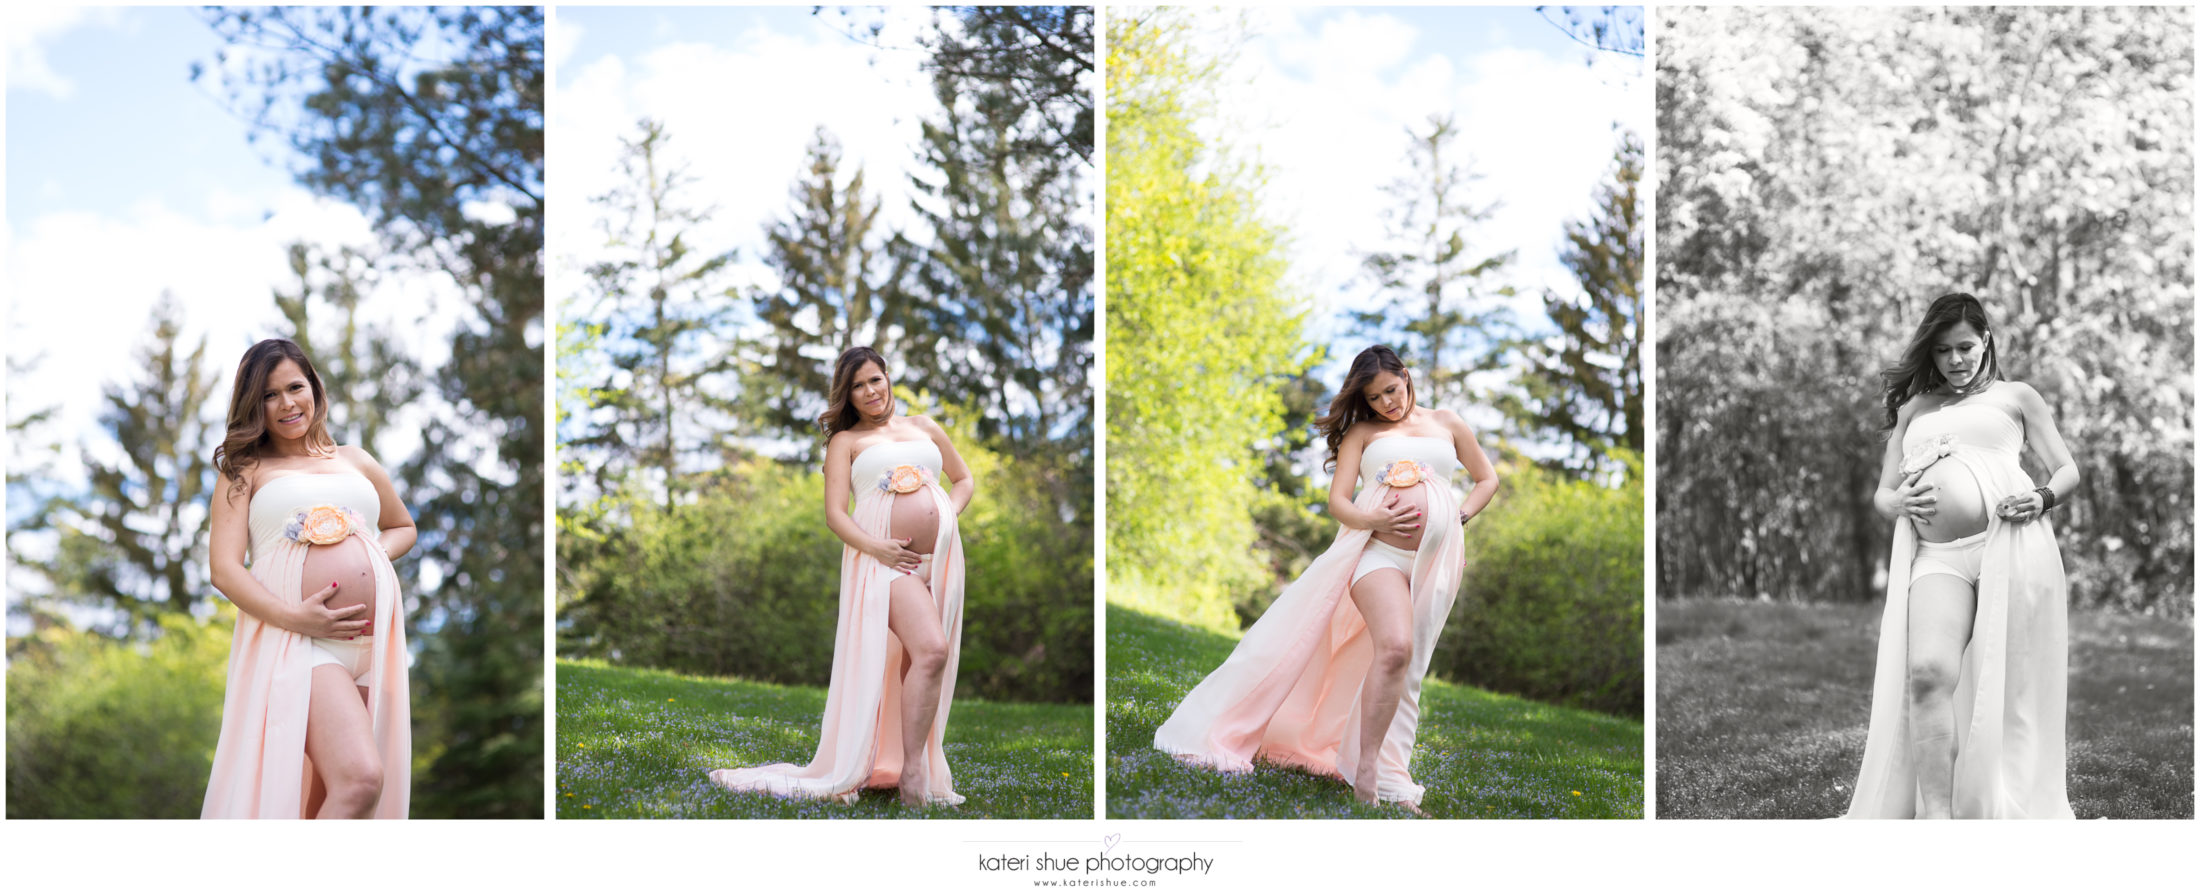 Yovana, metro detroit, maternity photographer, west bloomfield, motherhood, lifestyle